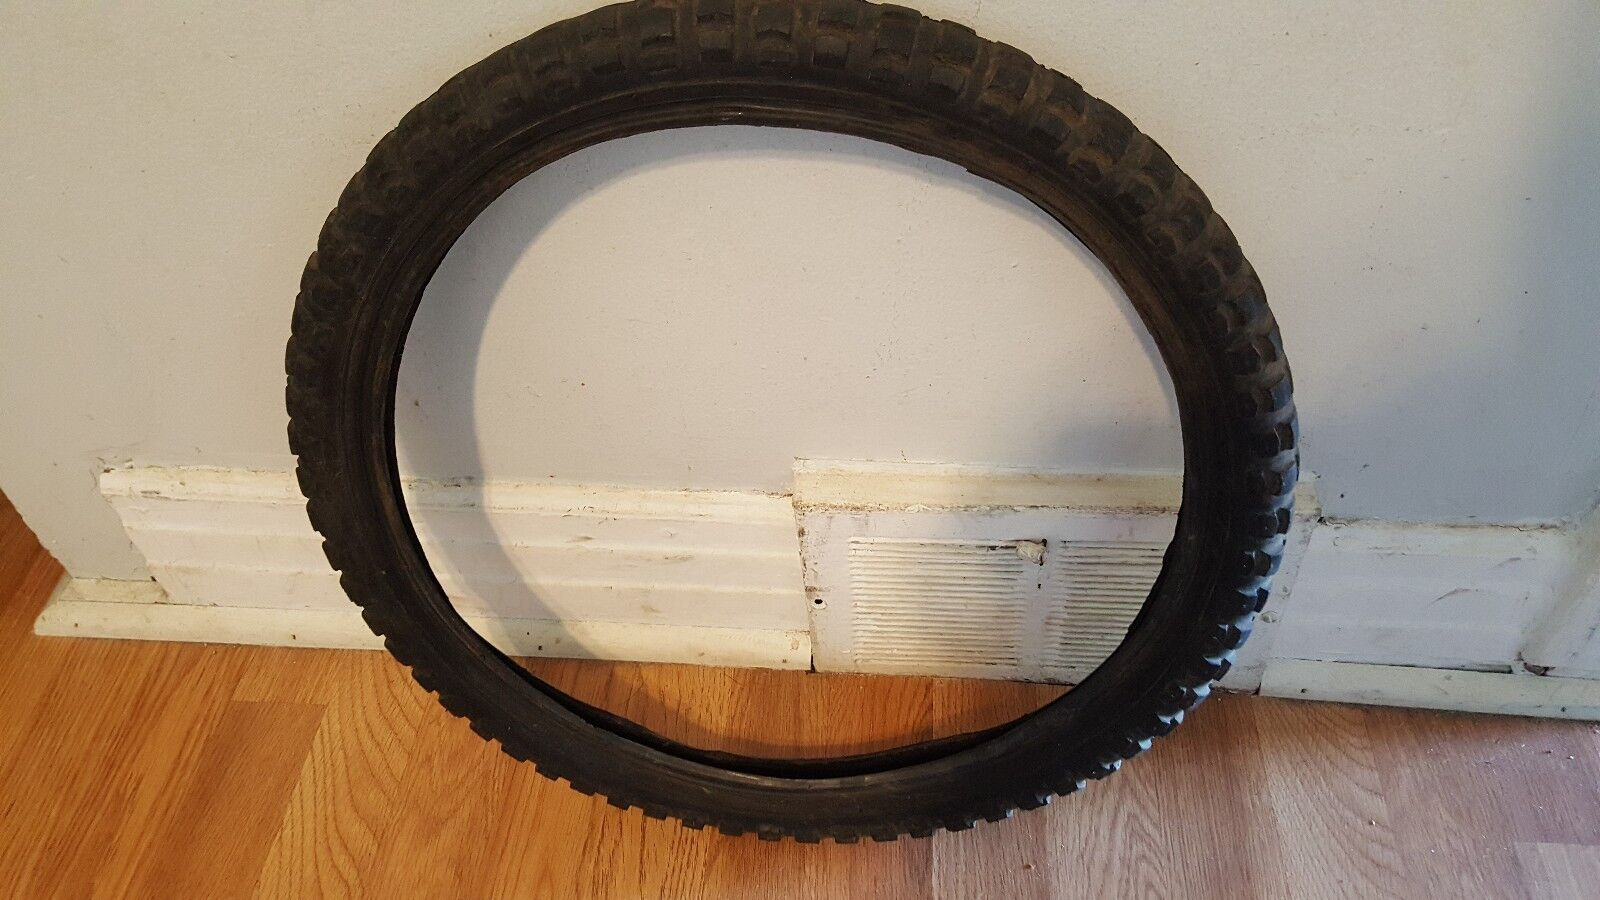 OLD SCHOOL BMX LHR TIRE 20X2.125 MODELLH314-07 MADE IN TAIWAN VINTAGE RARE